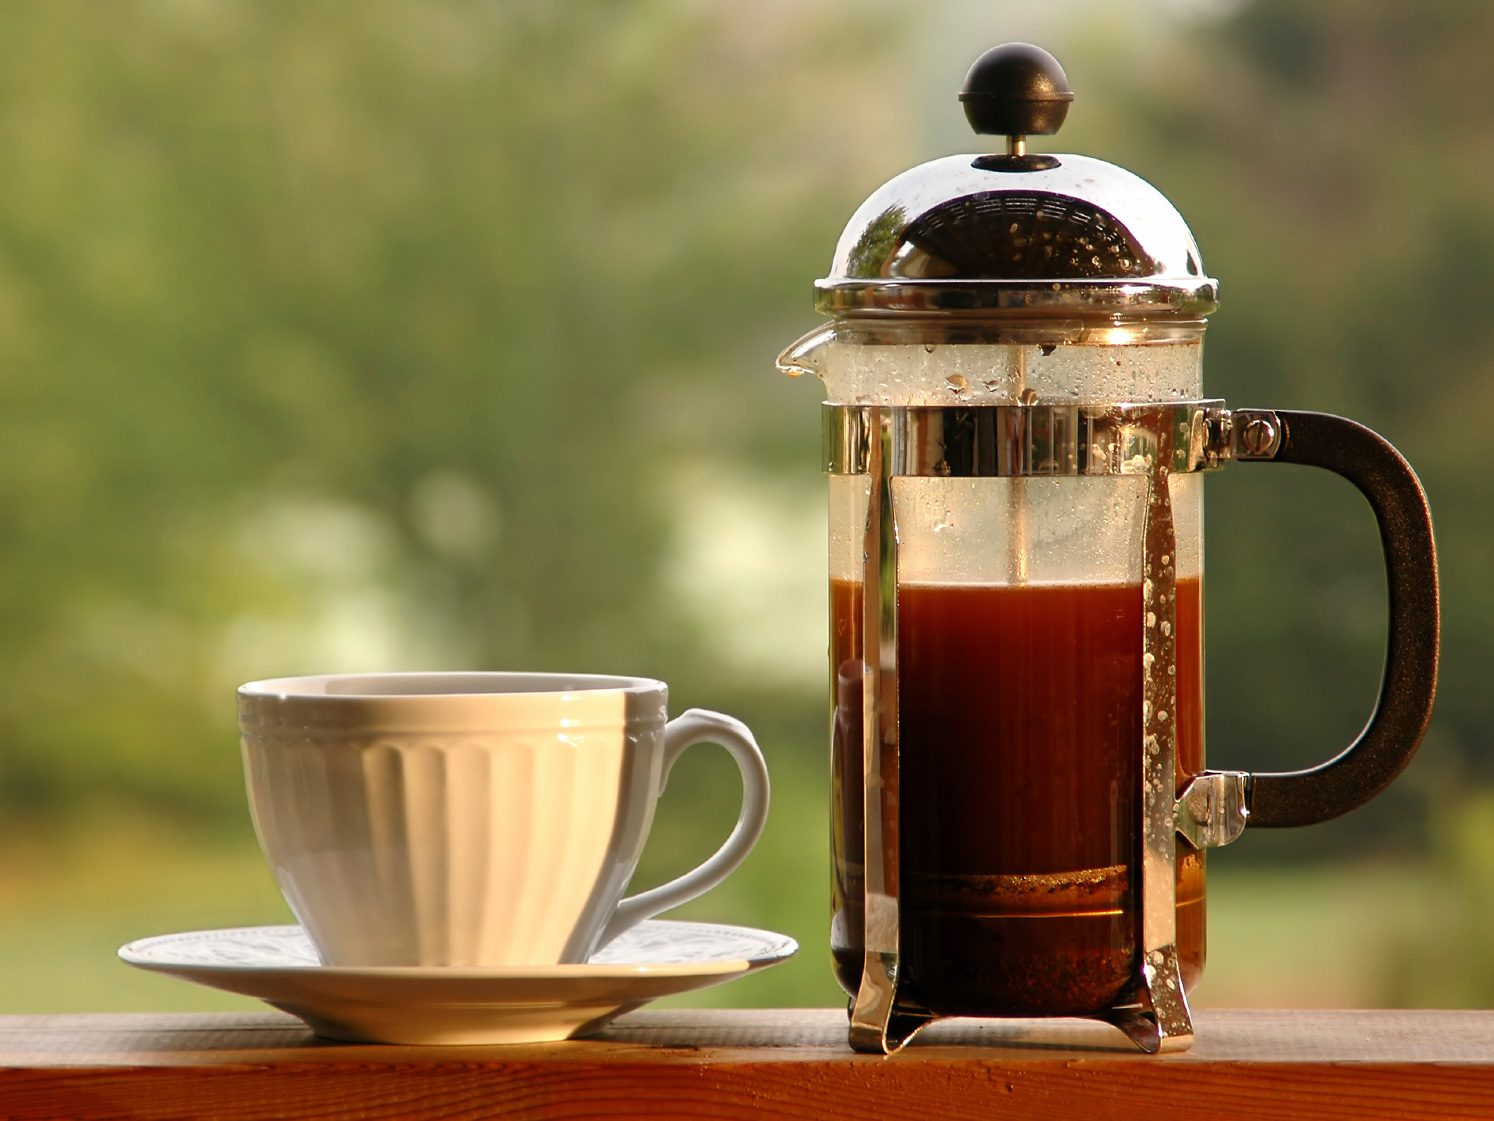 Kitchen-Cleaning Tips: Clean Your Coffee Pot